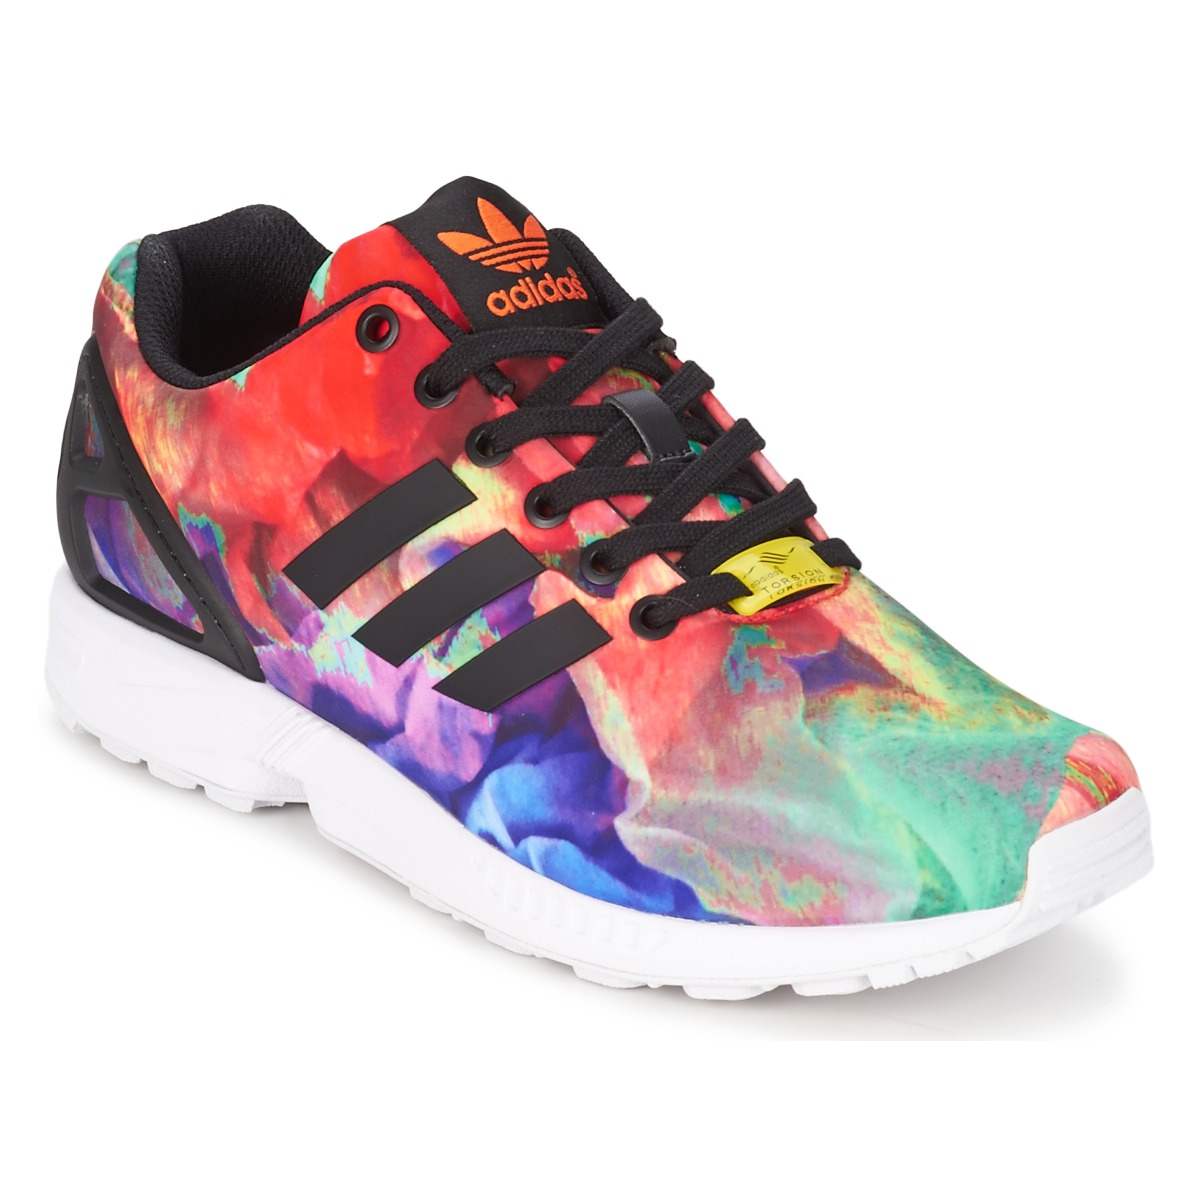 baskets basses adidas originals zx flux w multicolore baskets spartoo ventes pas. Black Bedroom Furniture Sets. Home Design Ideas